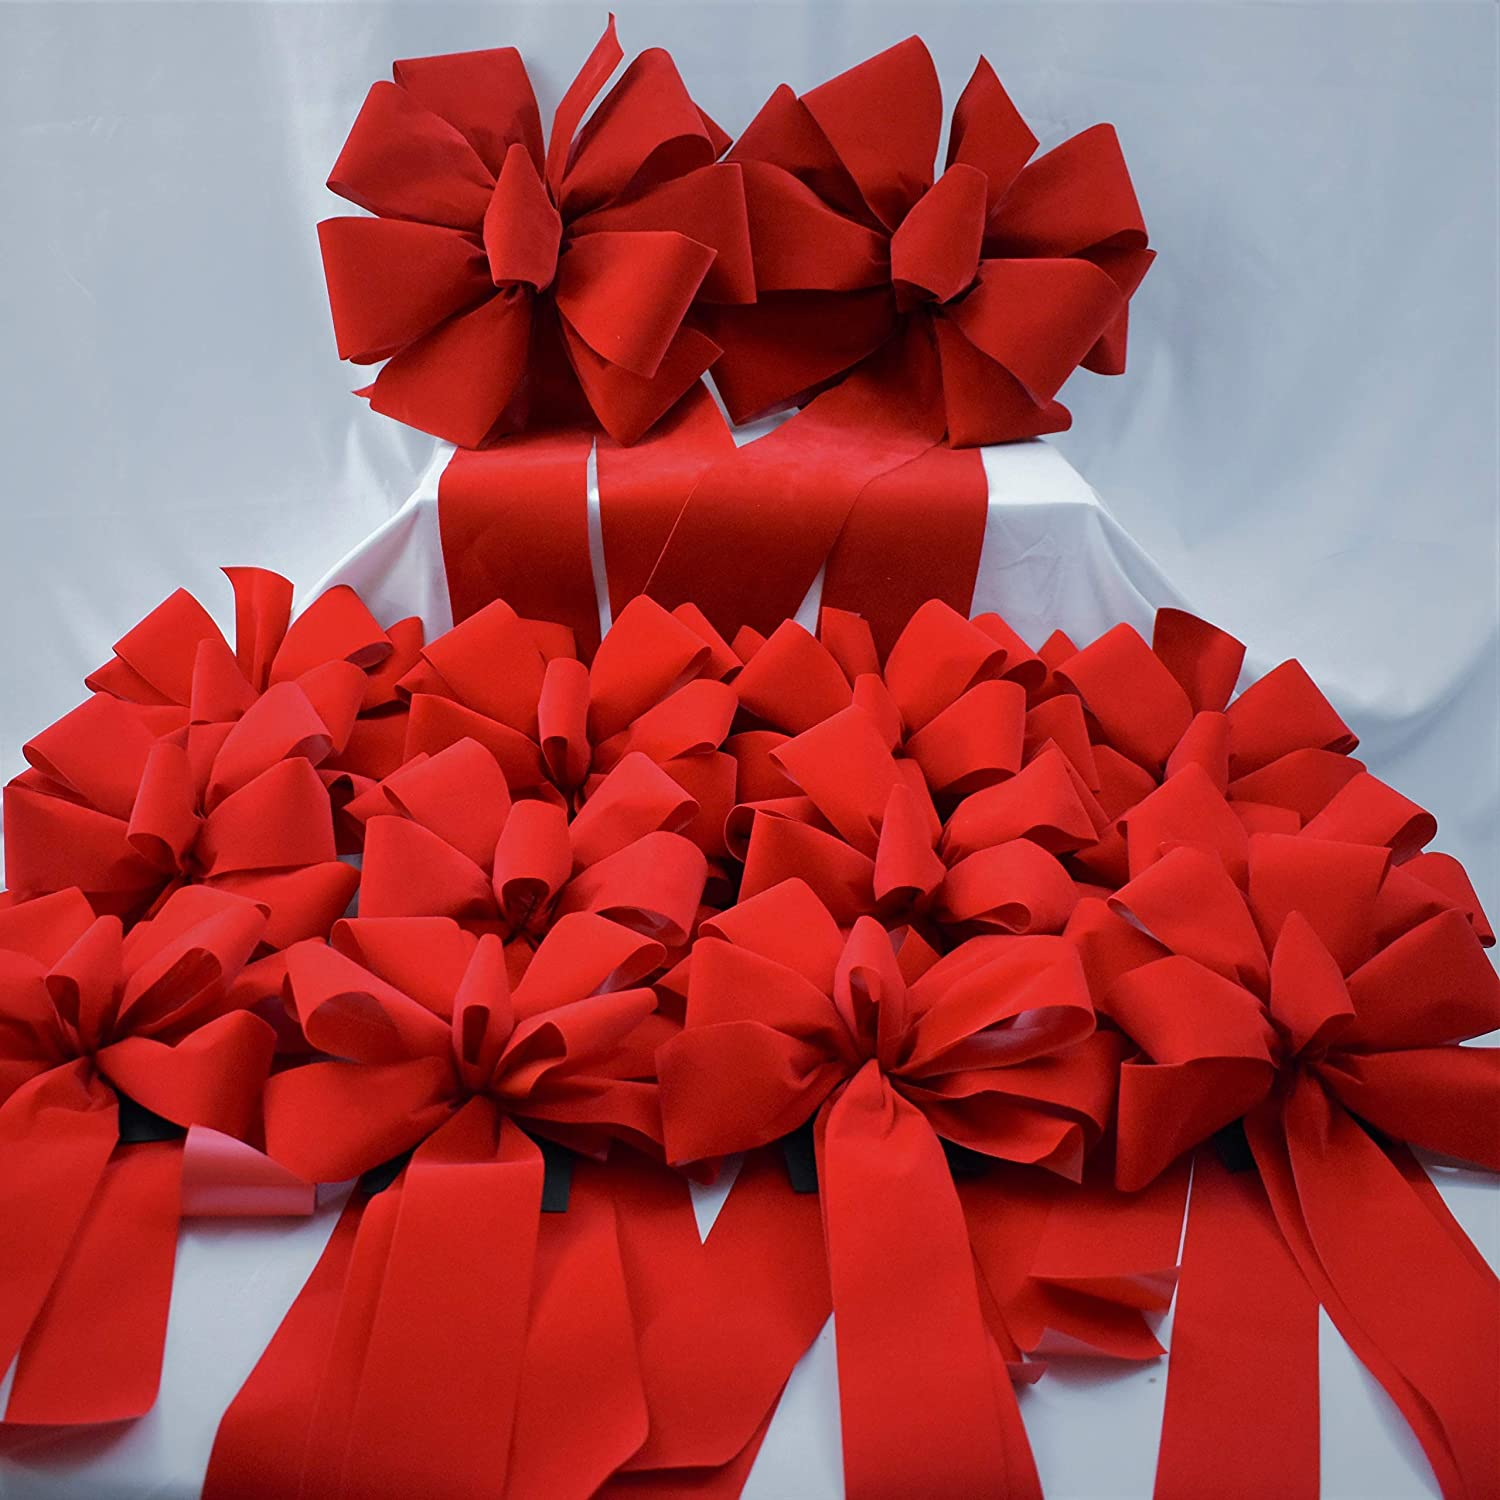 Assortment Of Big Red Velvet Christmas Bows 4 Ea Super Bows 15 X 44 And 12 Ea Premium Bows 10 X 26 Bows For Indoor Outdoor Christmas Decoration